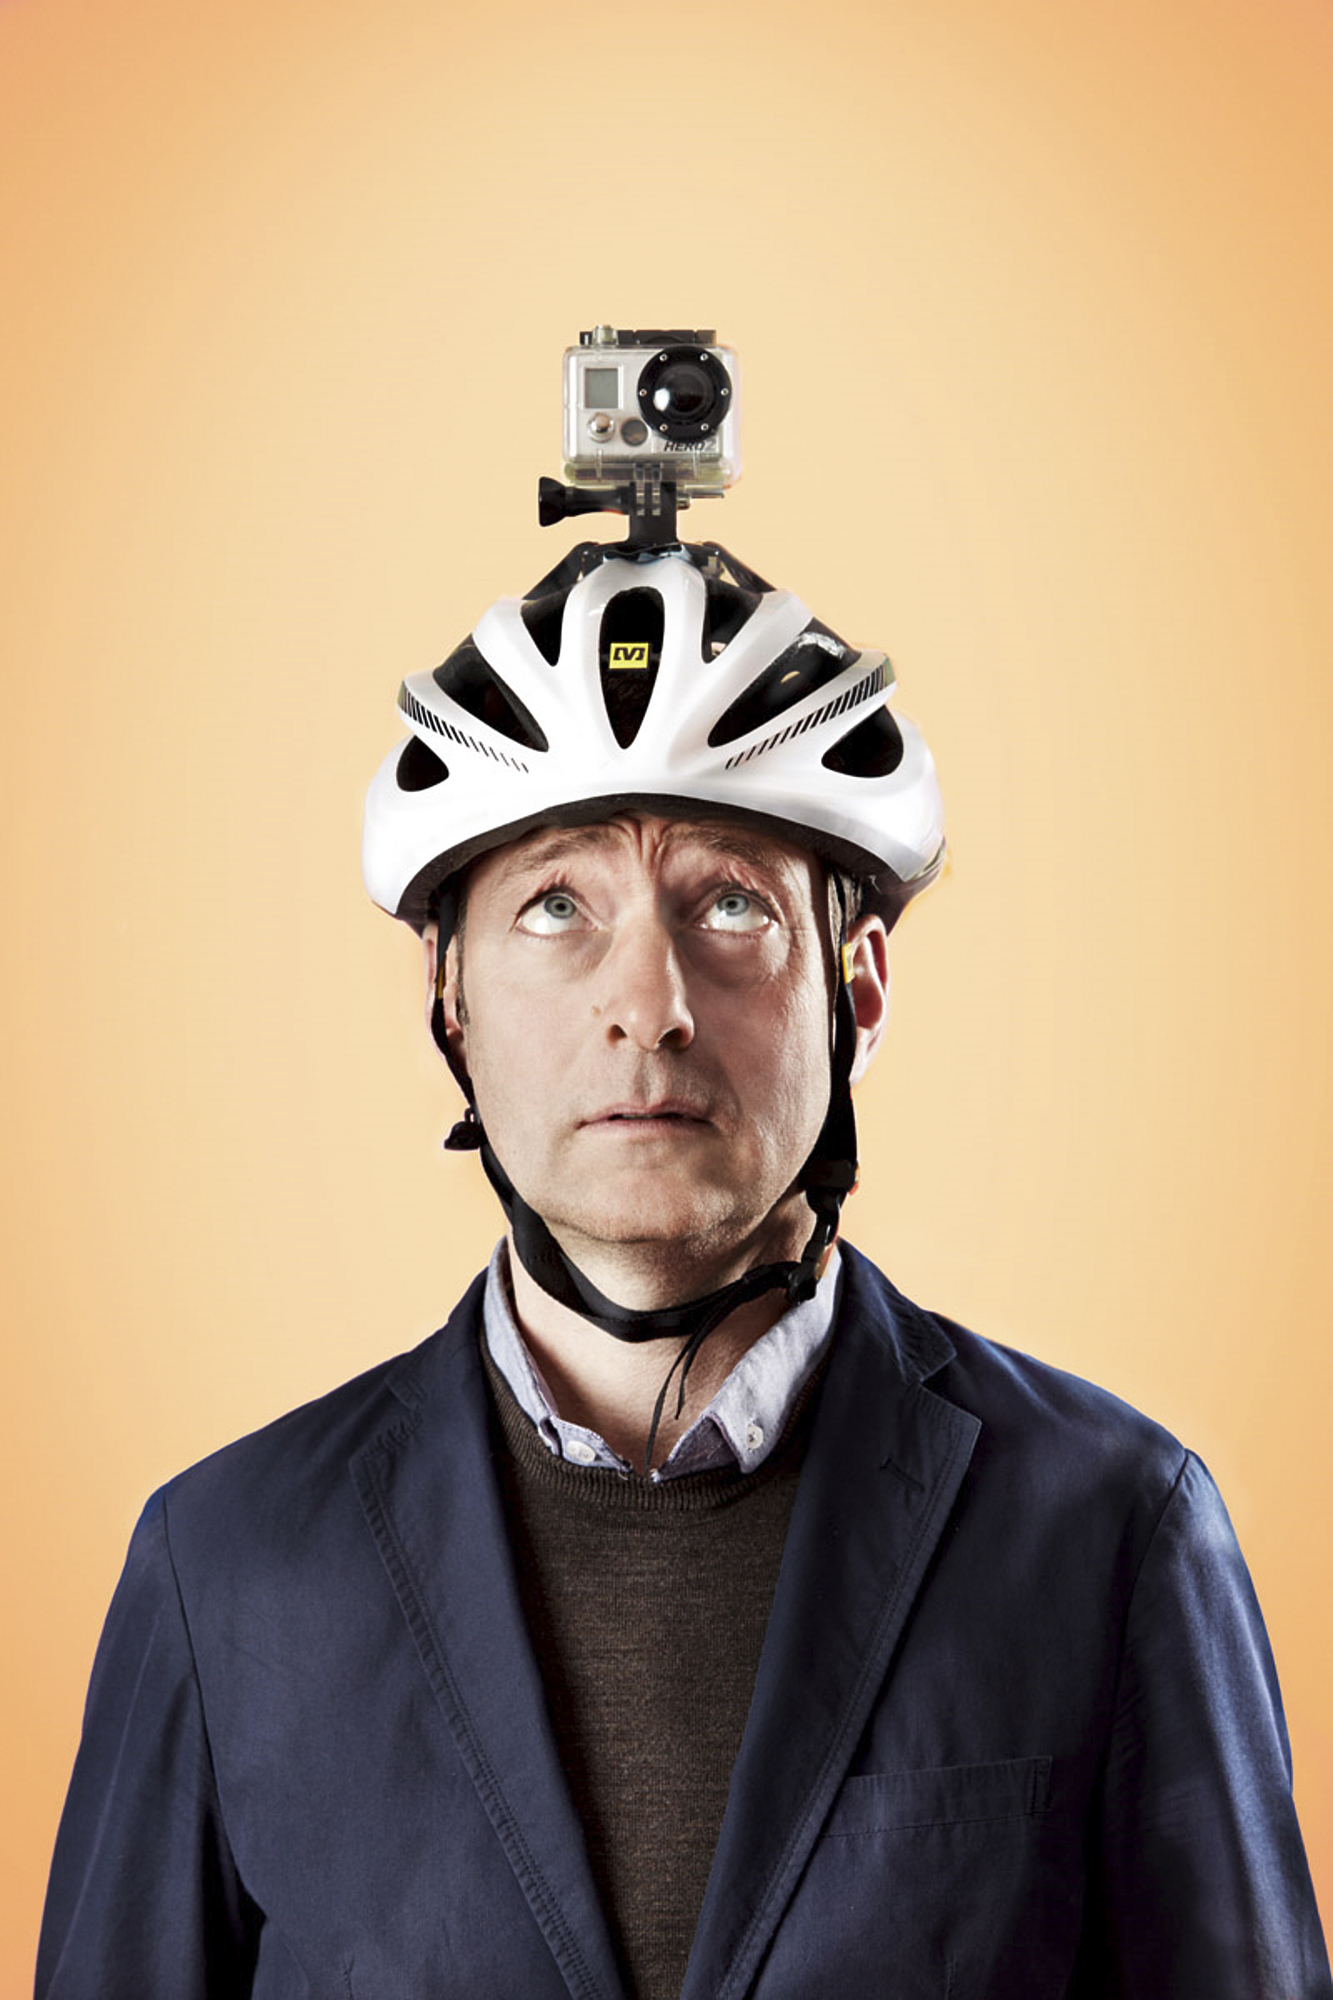 NED BOULTING - Publicity Poster Artwork